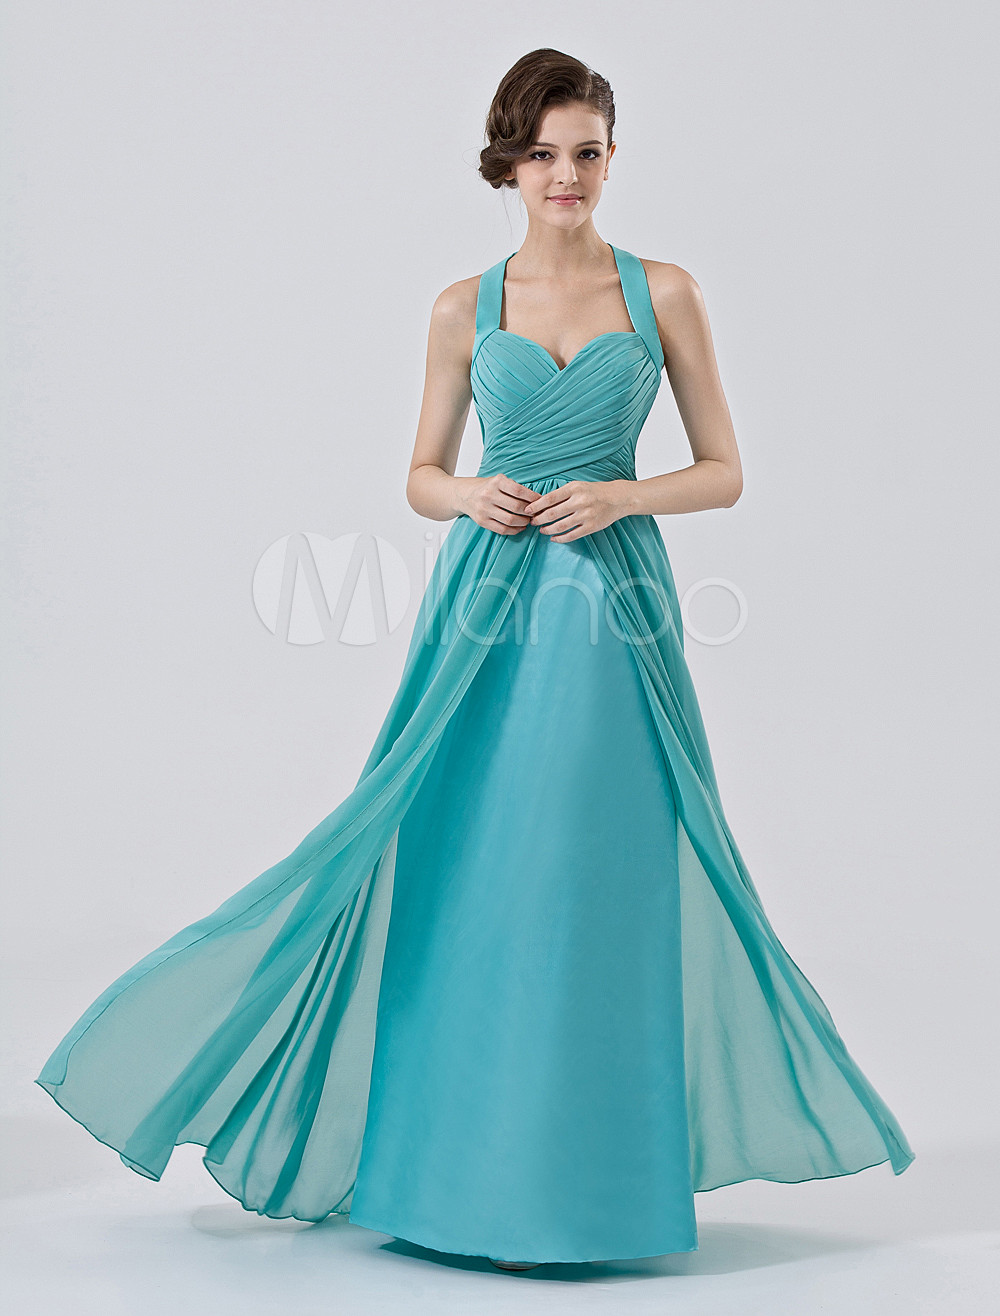 Turquoise Bridesmaid Dress Floor Length Halter Chiffon Satin Prom Dress